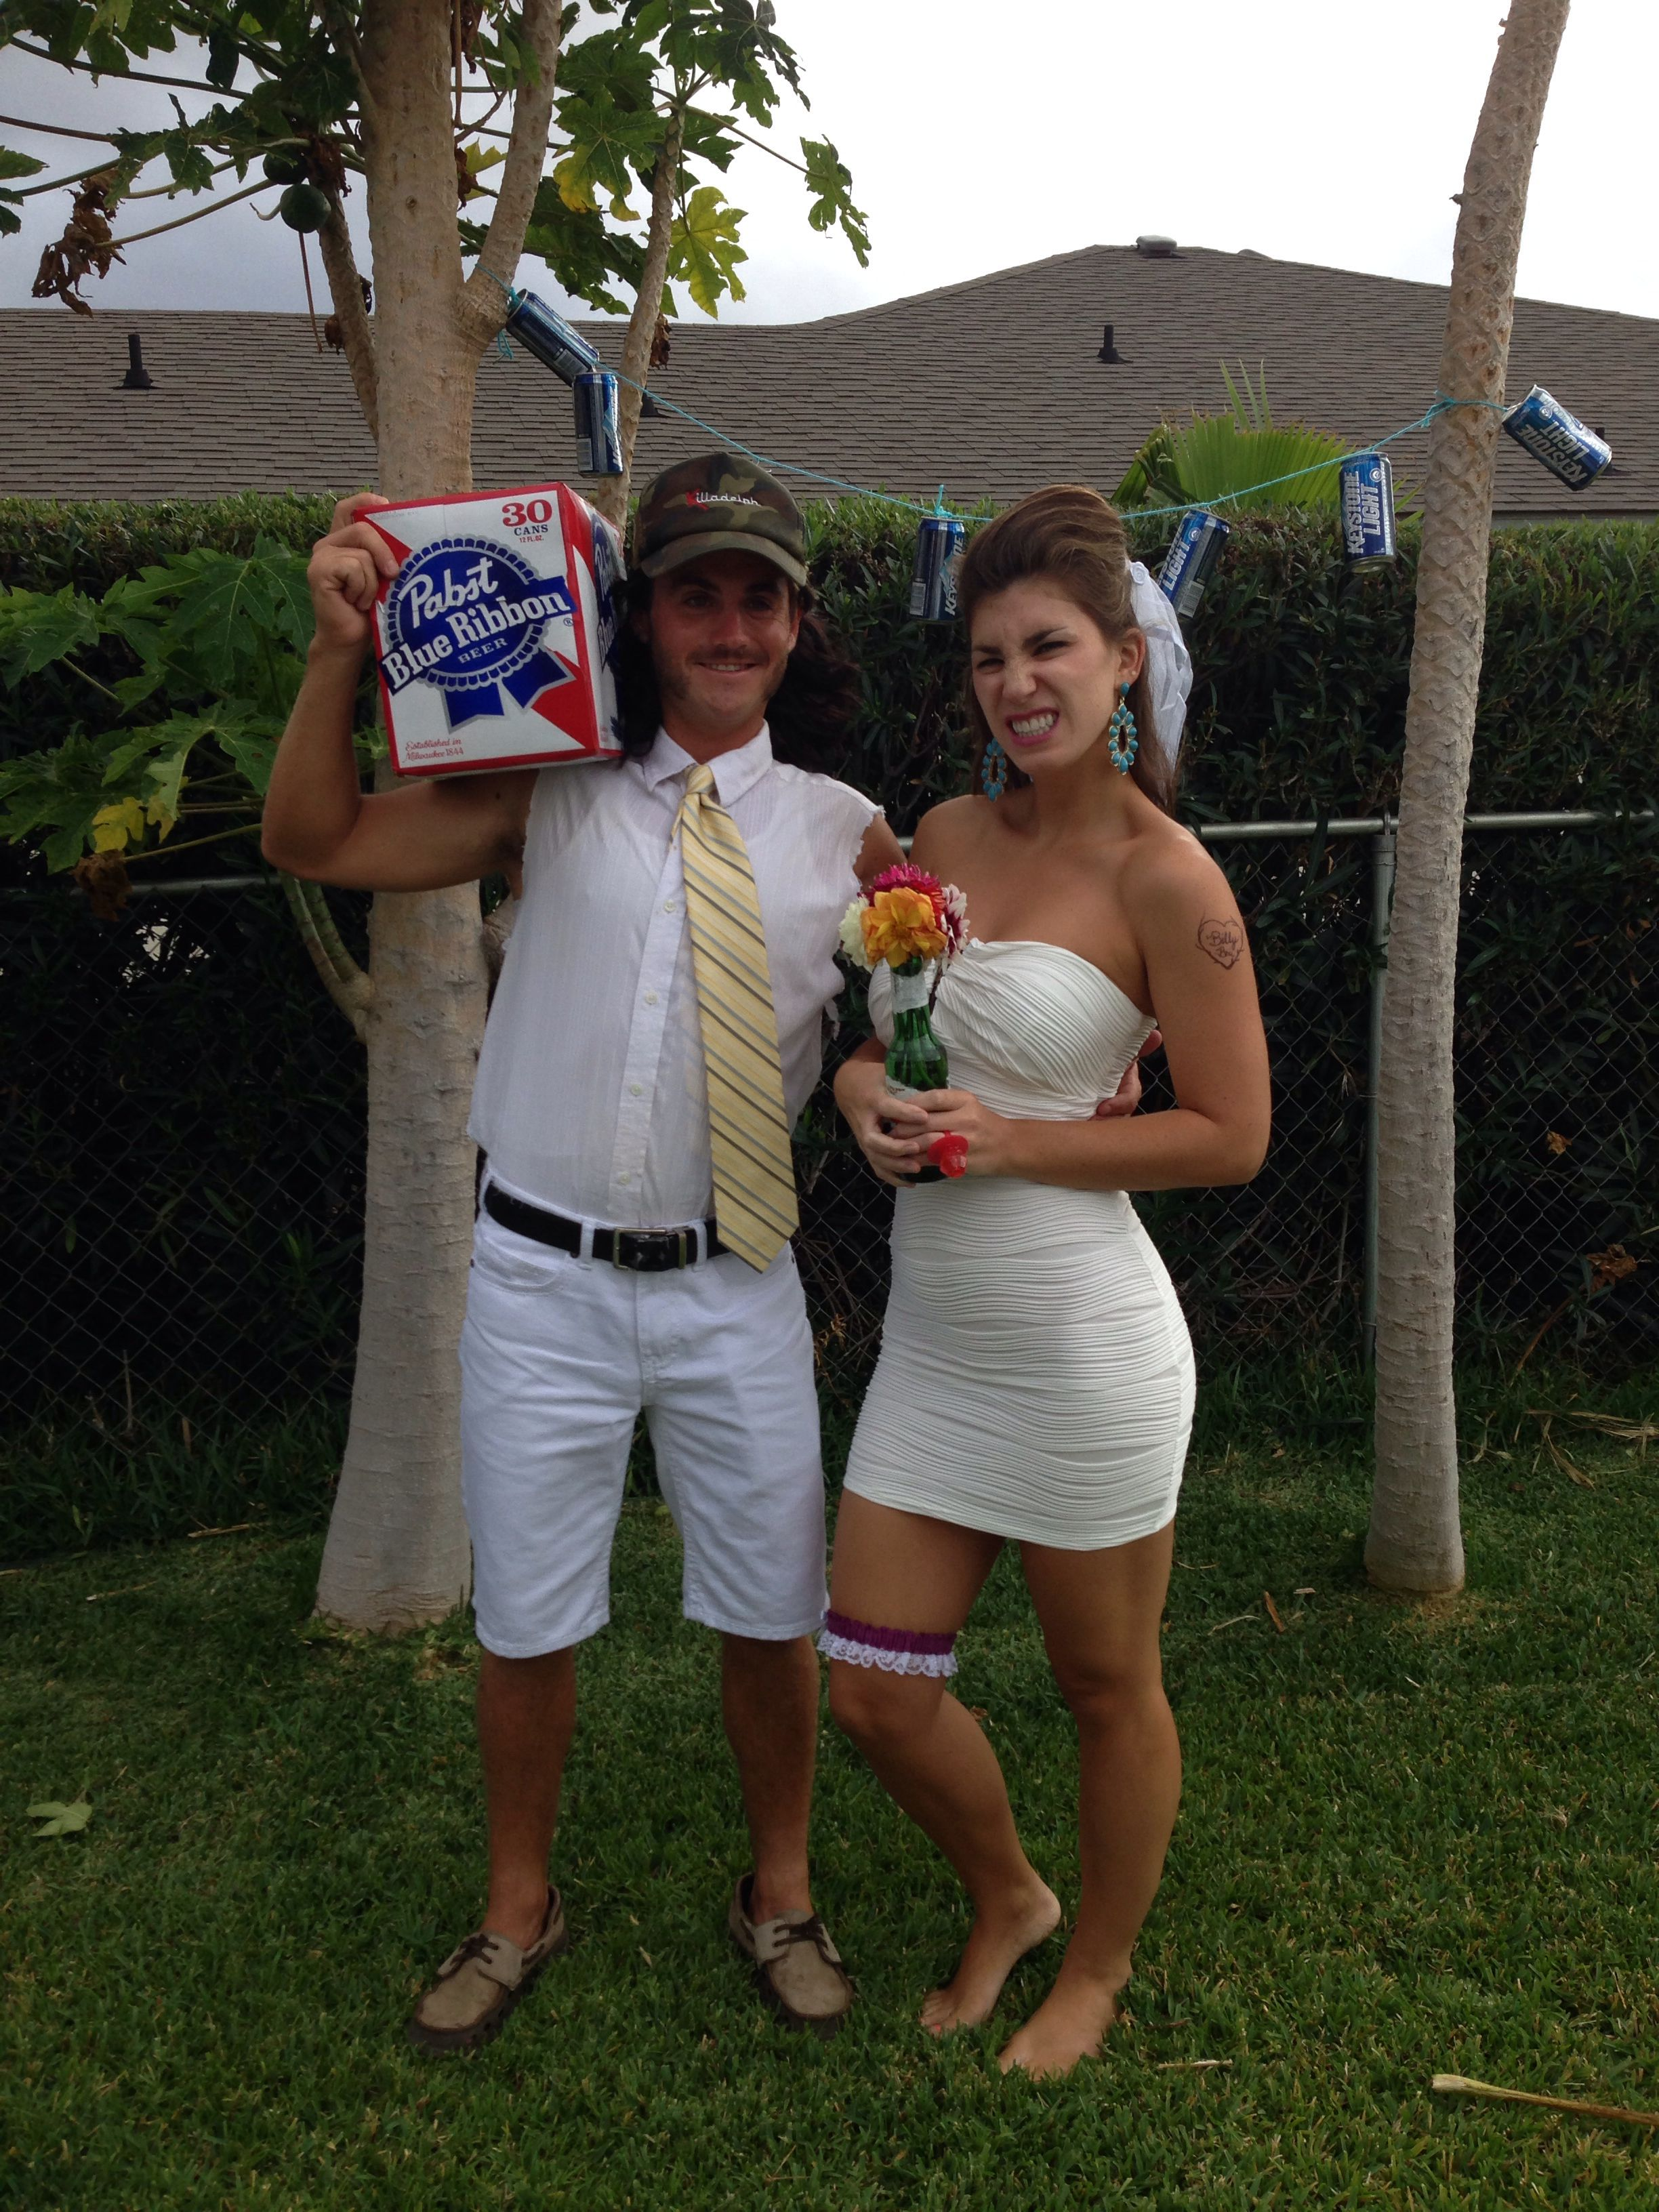 White Trash Wedding.Finally Figured Out What We Are Going To Be White Trash